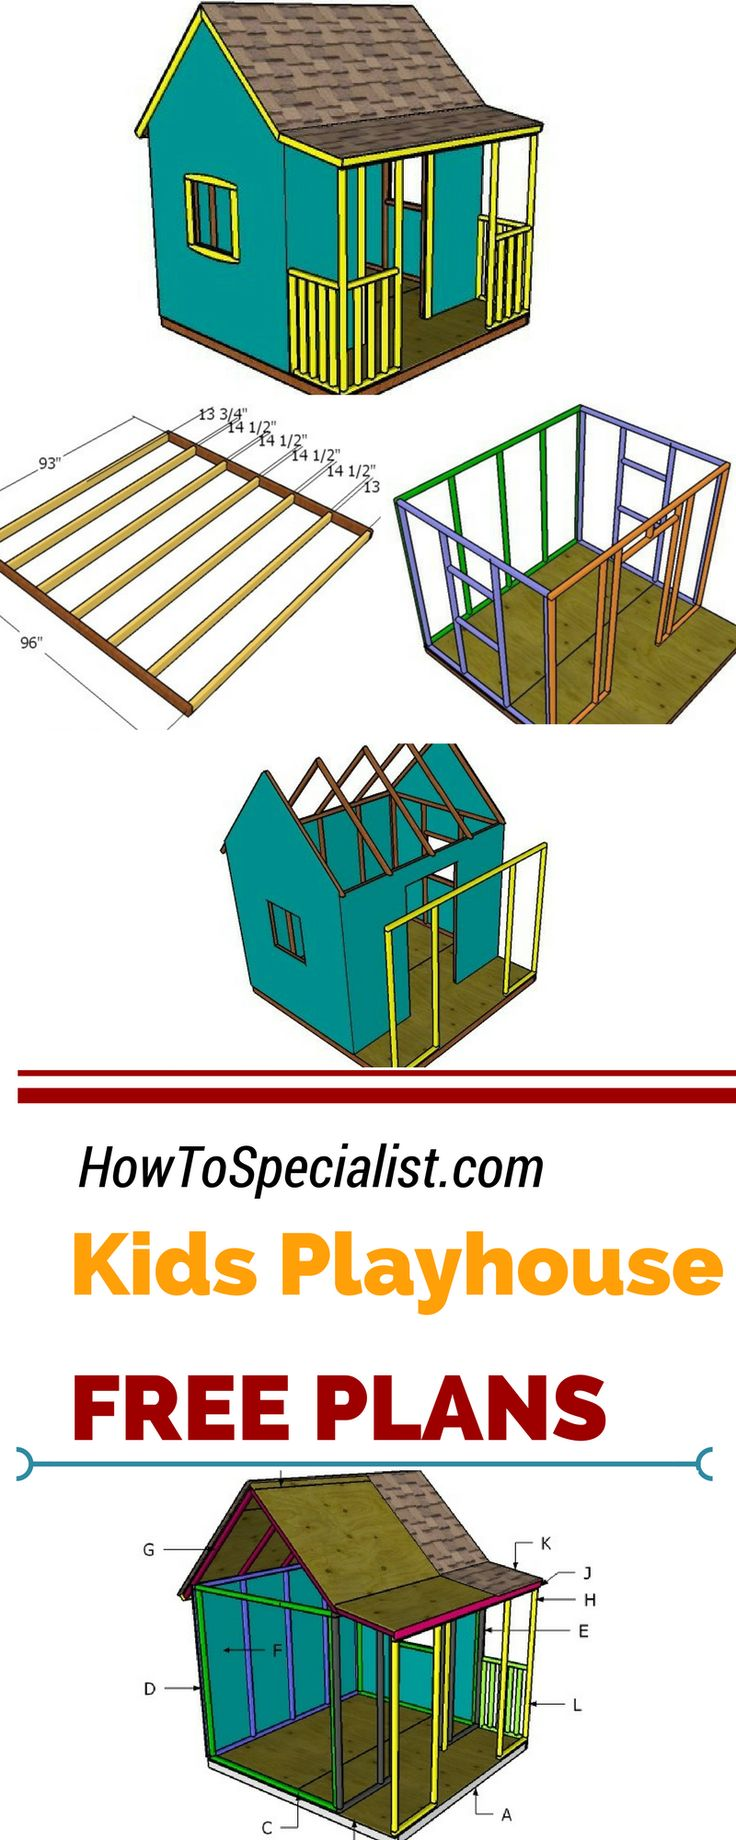 Diy bar plans howtospecialist how to build step by step diy plans - This Step By Step Woodworking Project Is About Free Outdoor Playhouse Plans I Have Designed This Playhouse With Porch So You Can Put A Smile On Your Kids